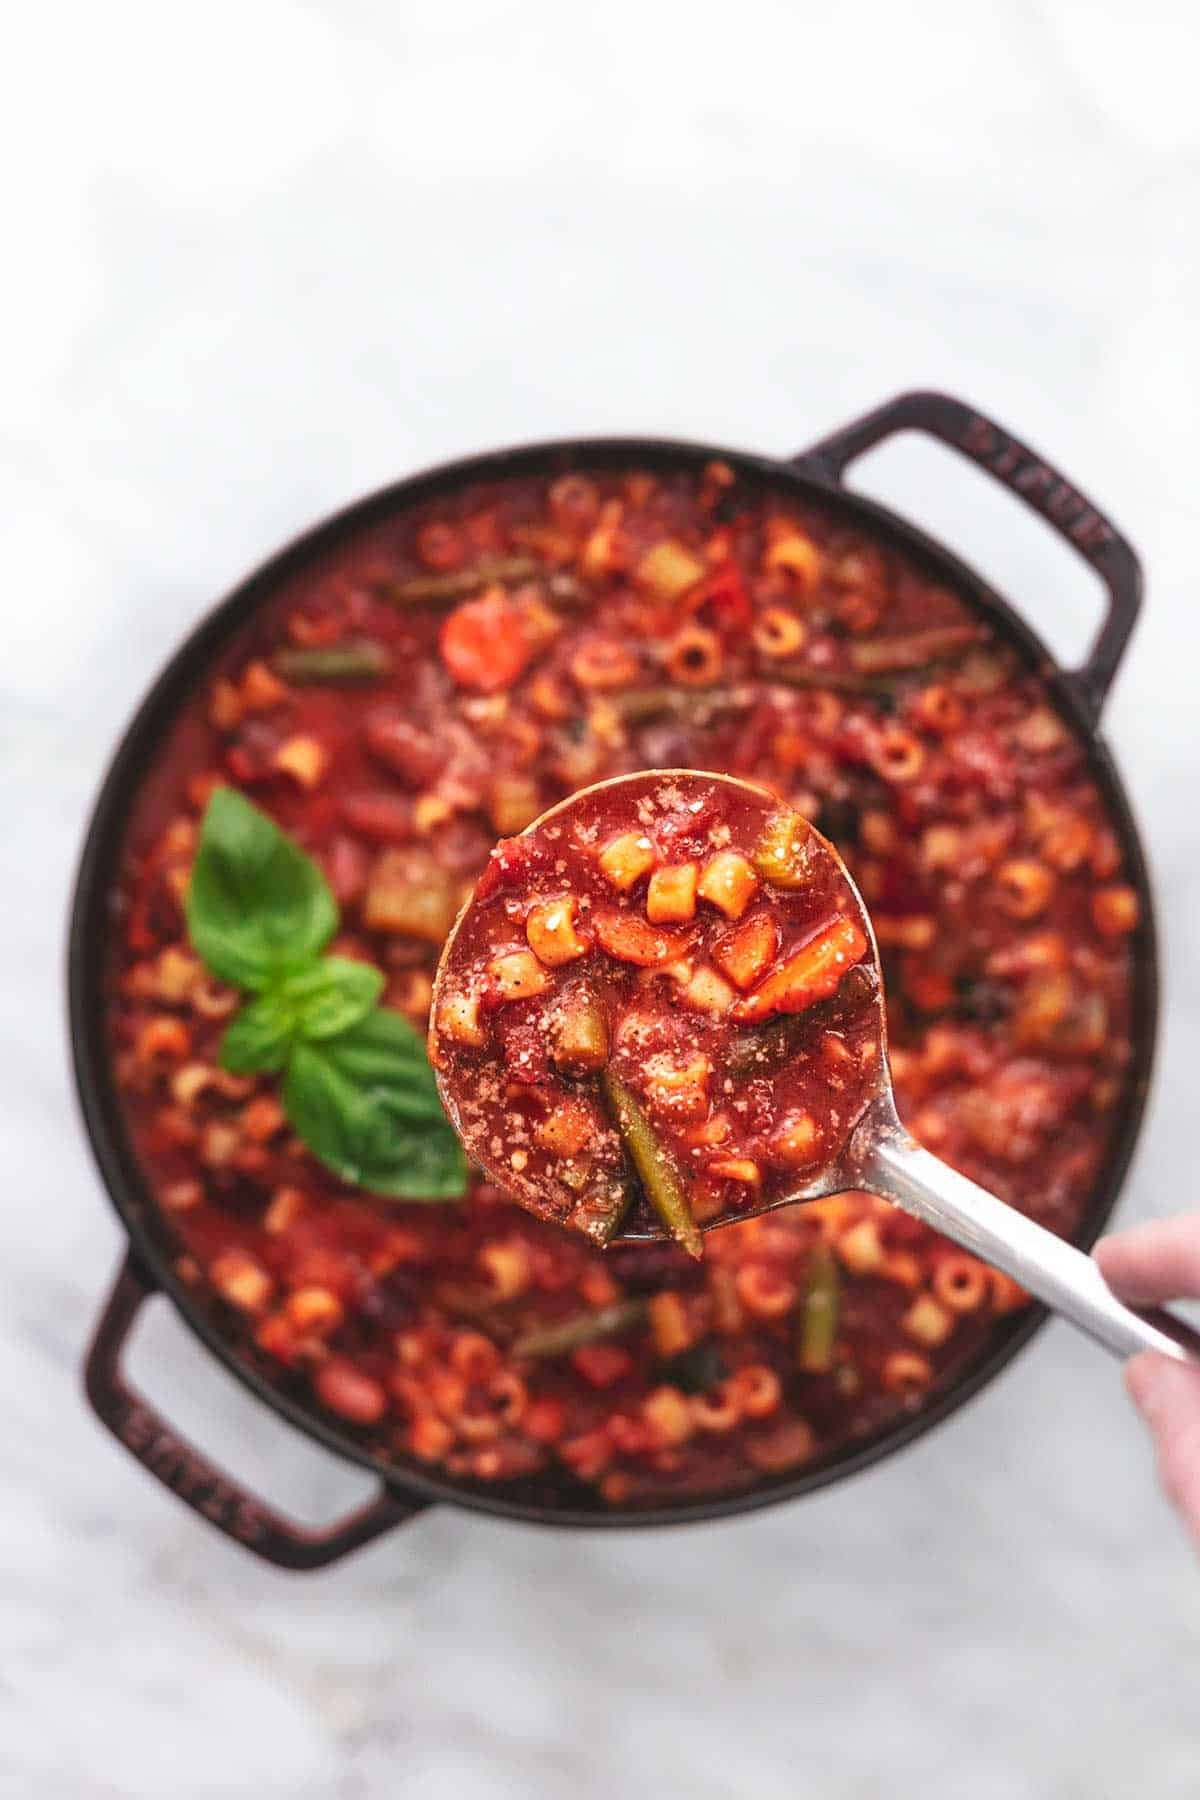 ladle full of minestrone soup over a pot of soup